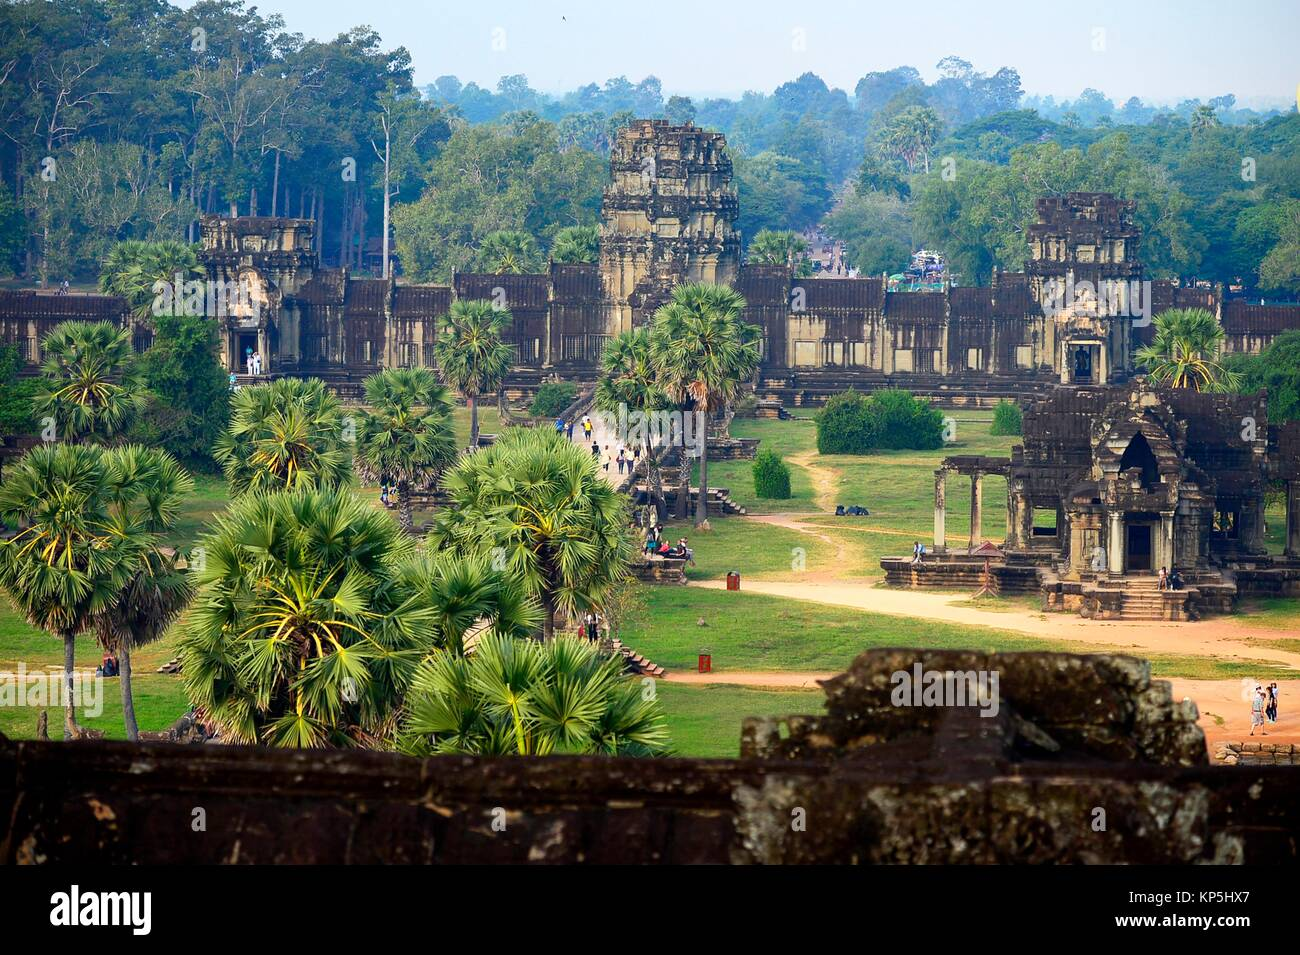 Angkor Wat temple,Cambodia,Indochina,Southeast Asia,Asia. - Stock Image